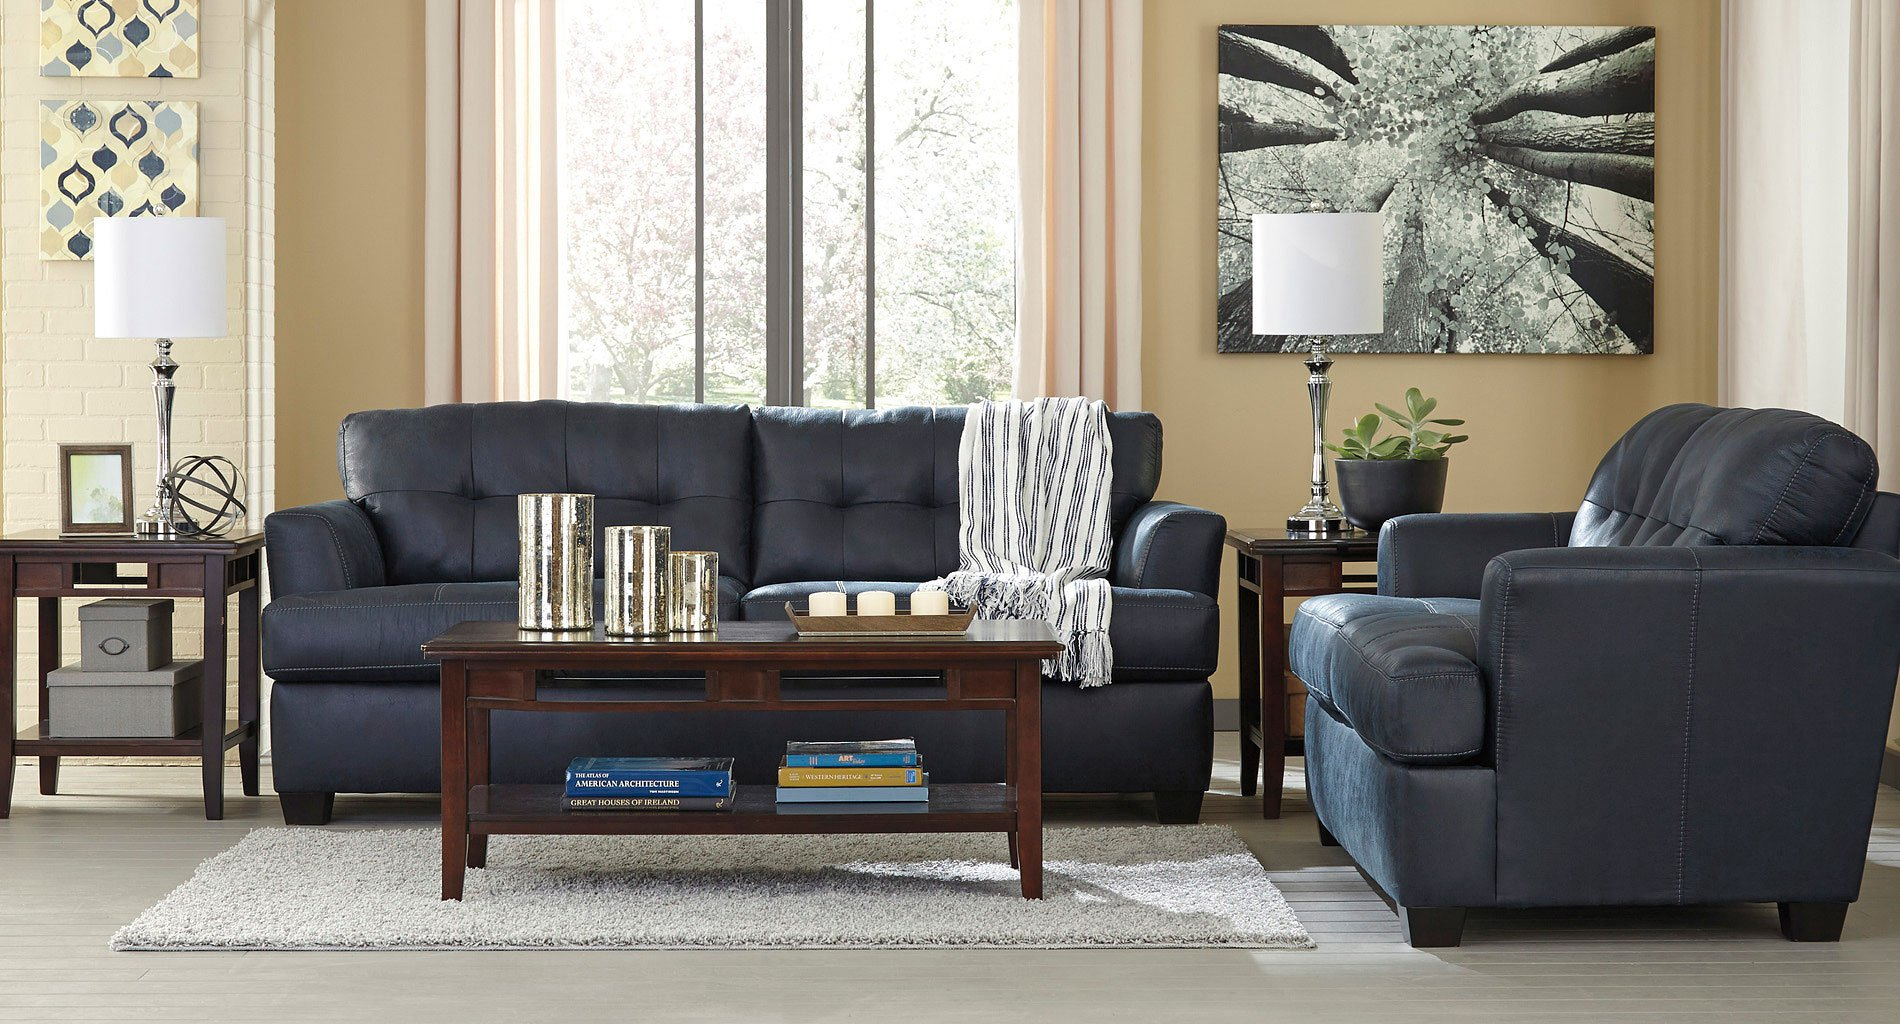 Inmon Navy Living Room Set by Benchcraft 1 Reviews